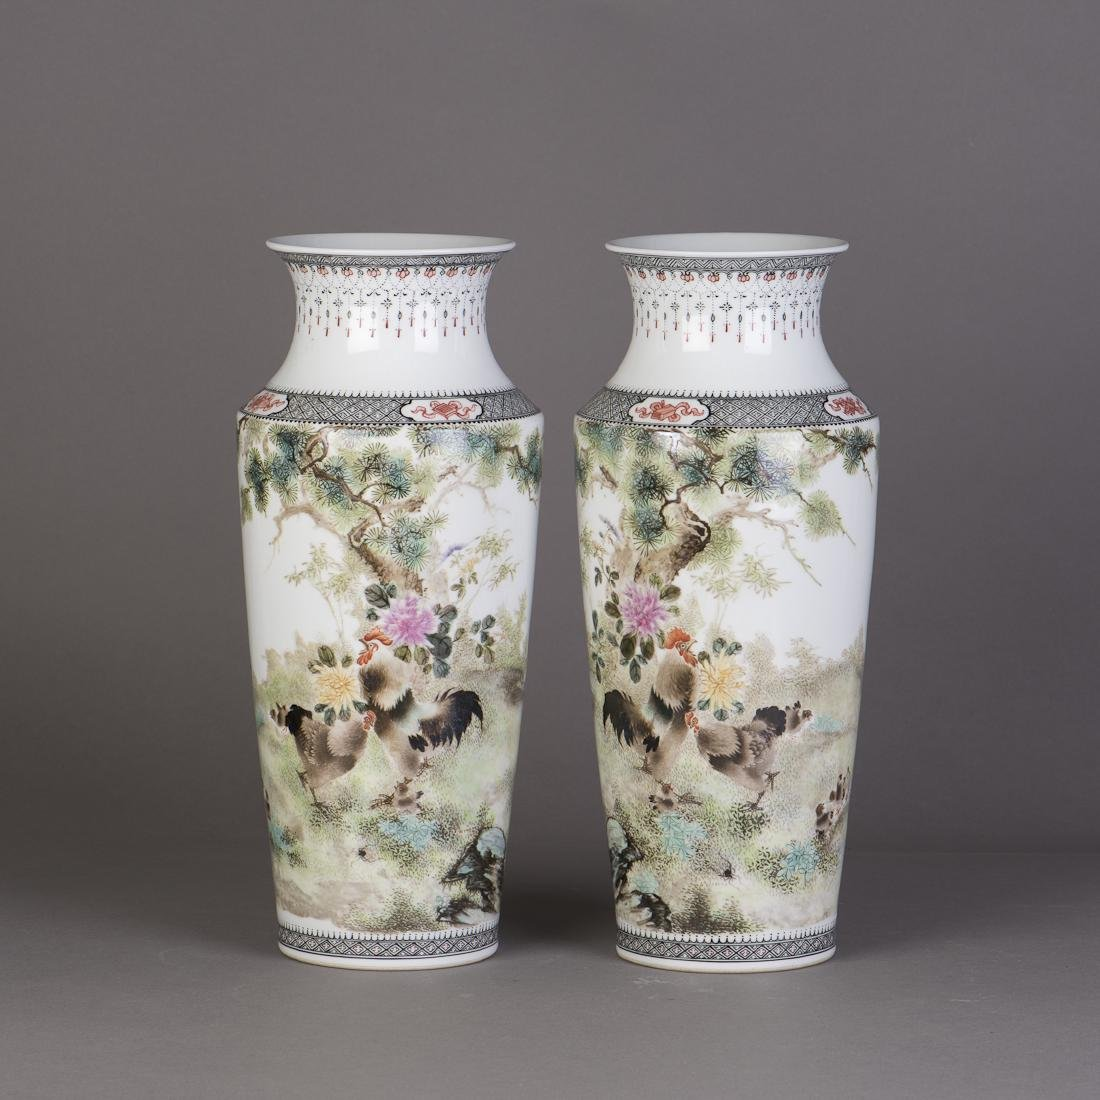 A PAIR OF FAMILLE ROSE PORCELAIN VASES